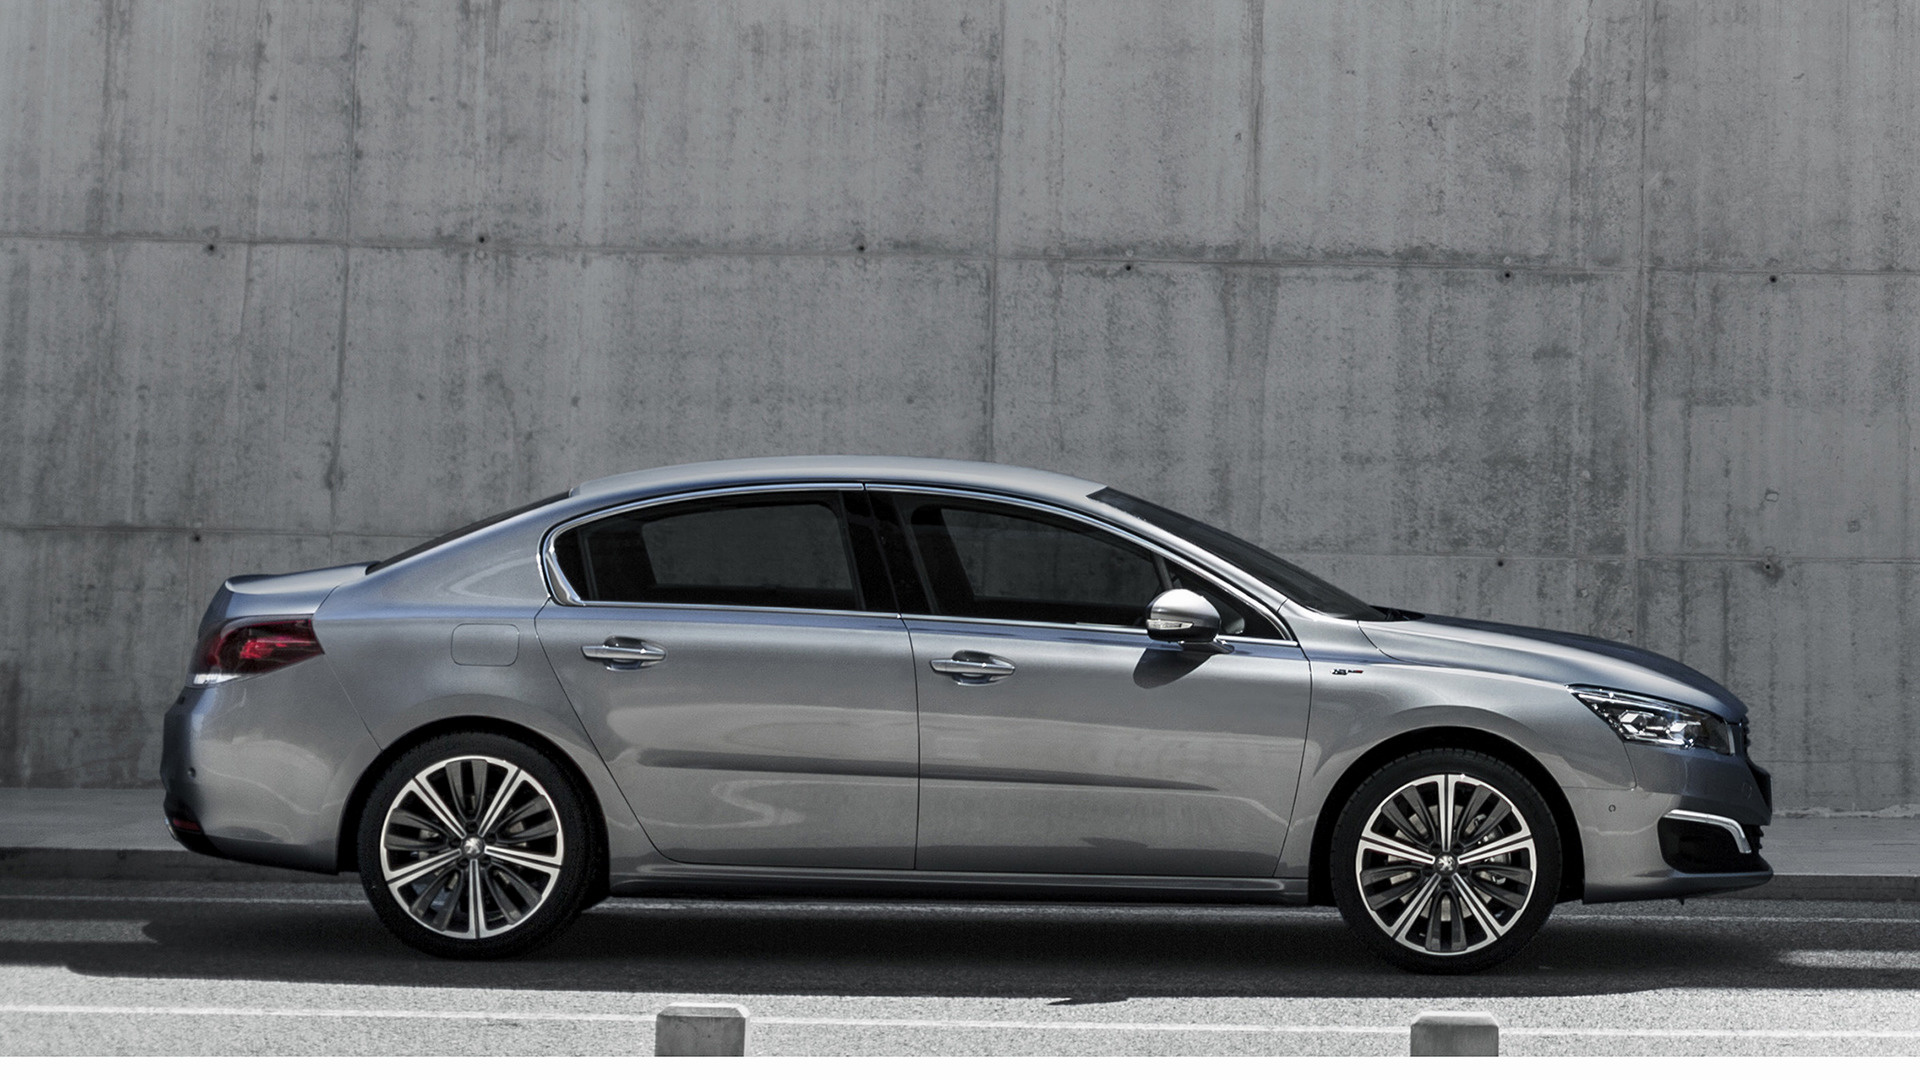 2014 Peugeot 508 Gt Wallpapers And Hd Images Car Pixel